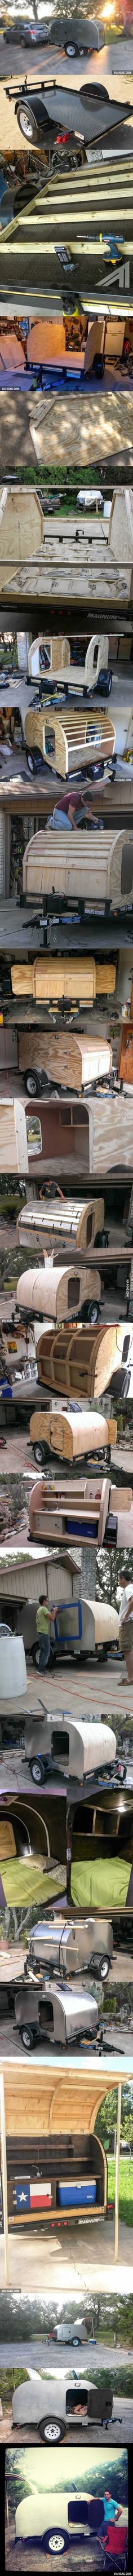 I want to build a tiny camping trailer like this guy's! It looks like it…